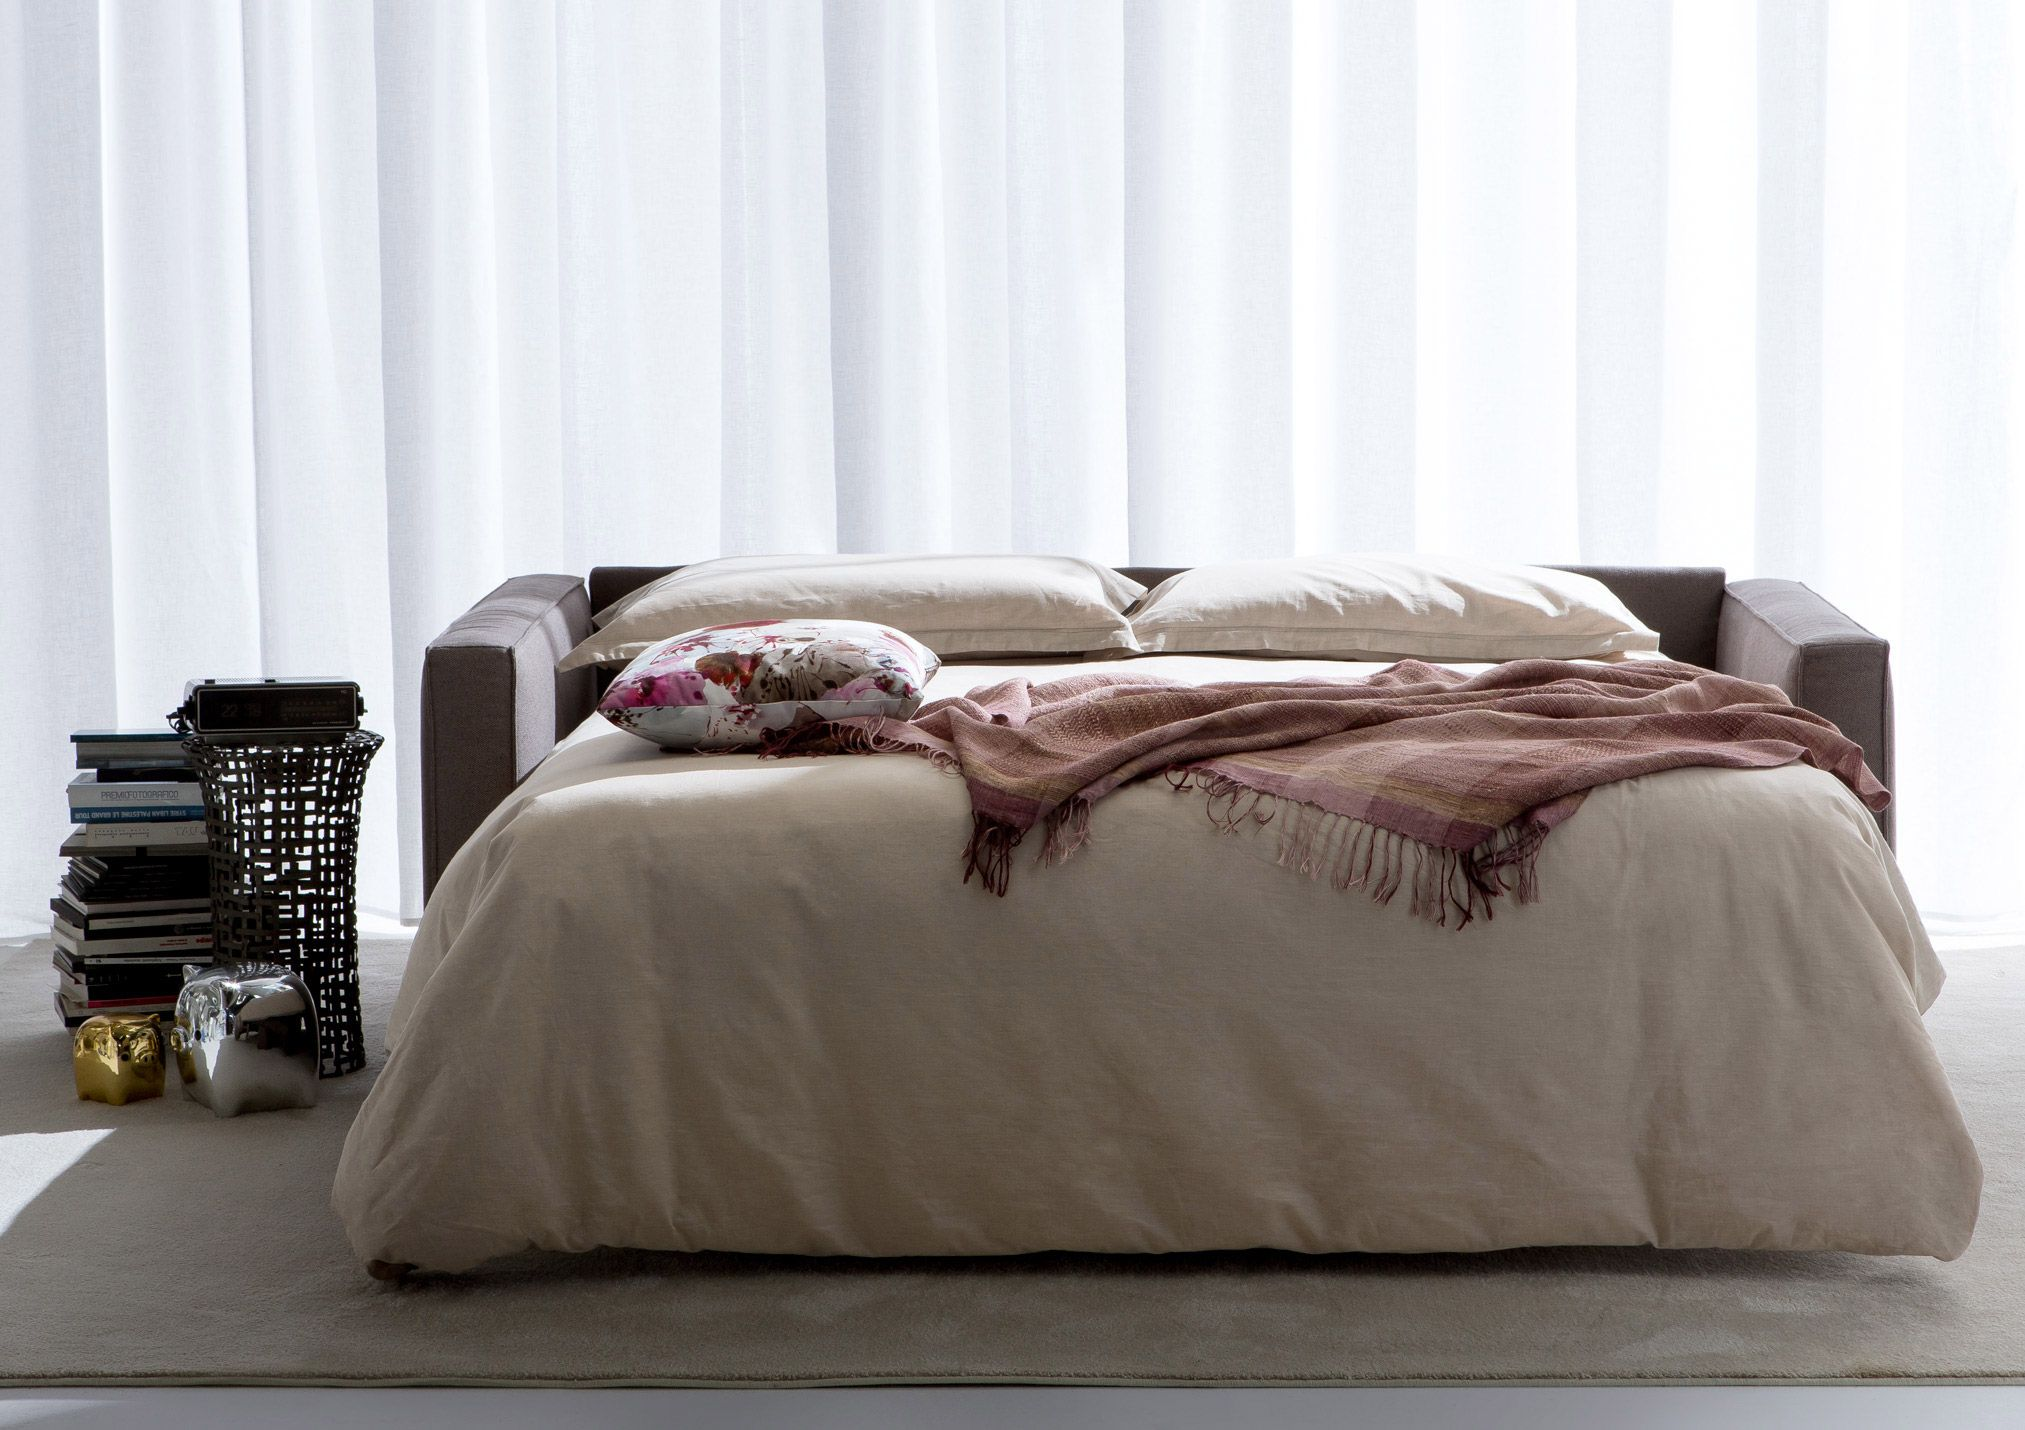 Canapè convertible Gulliver Bed, Sofa bed, Smart living